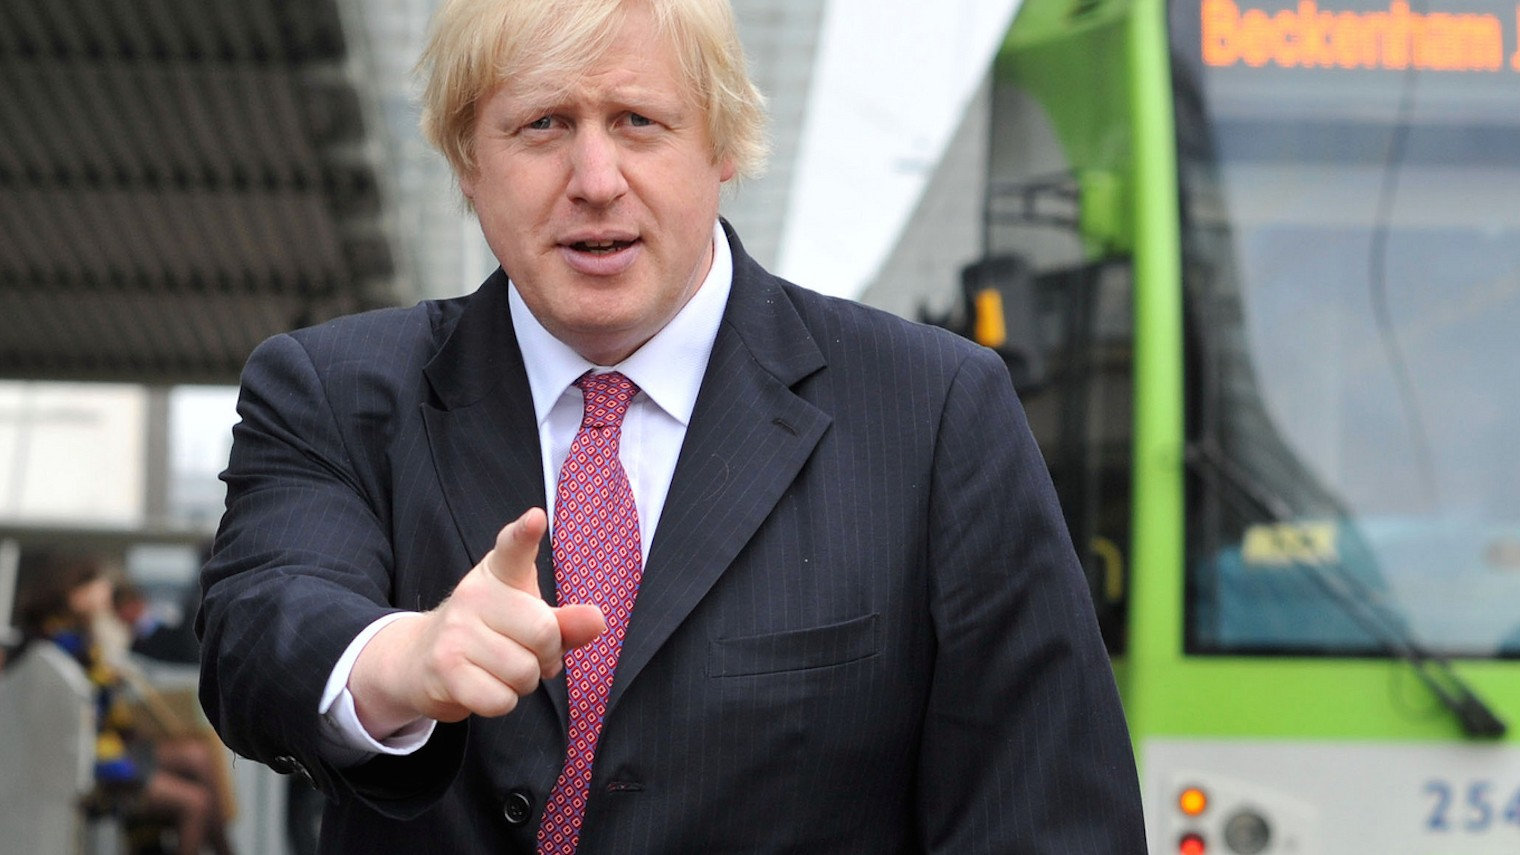 So Boris Johnson Is Now in Charge of the UK's Cybersecurity